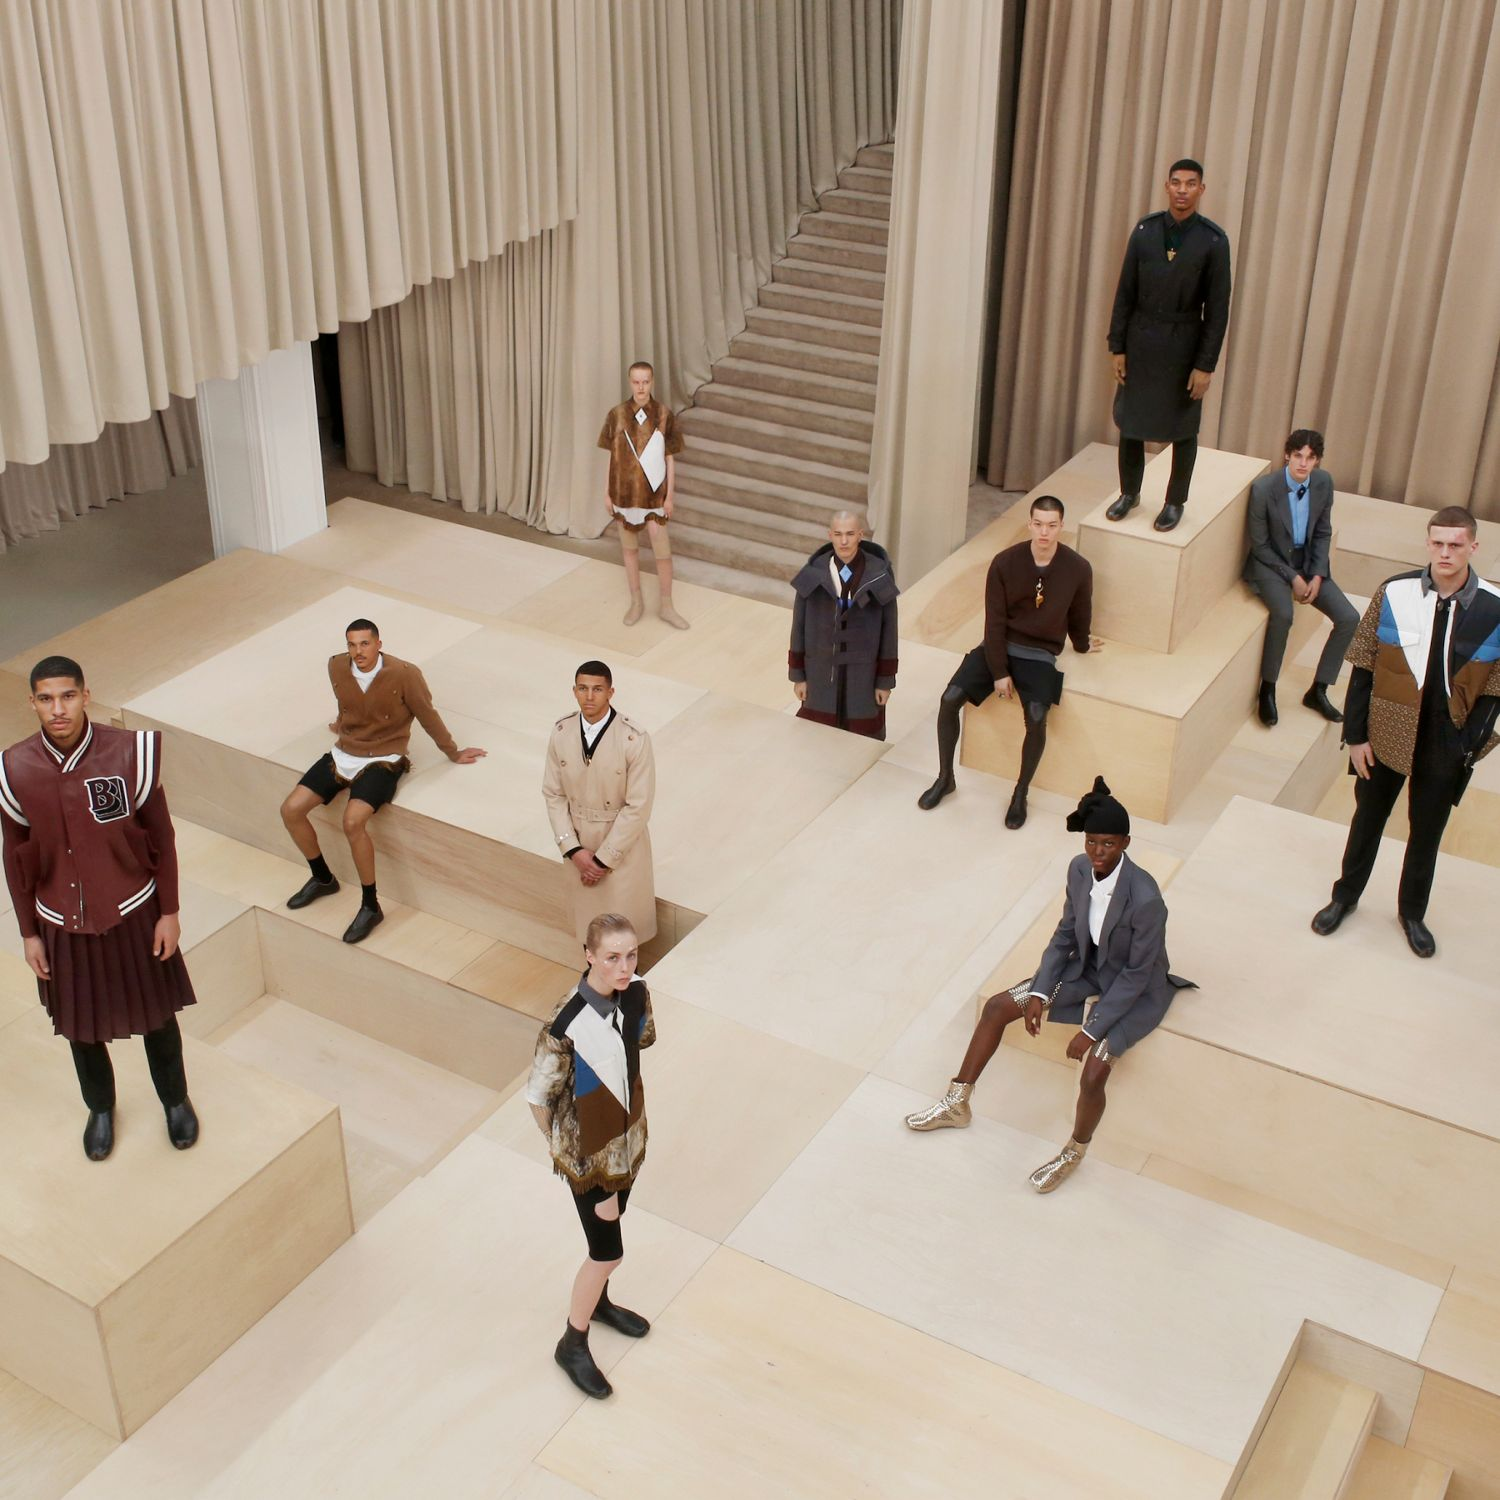 The Autumn/Winter 2021 Menswear Presentation